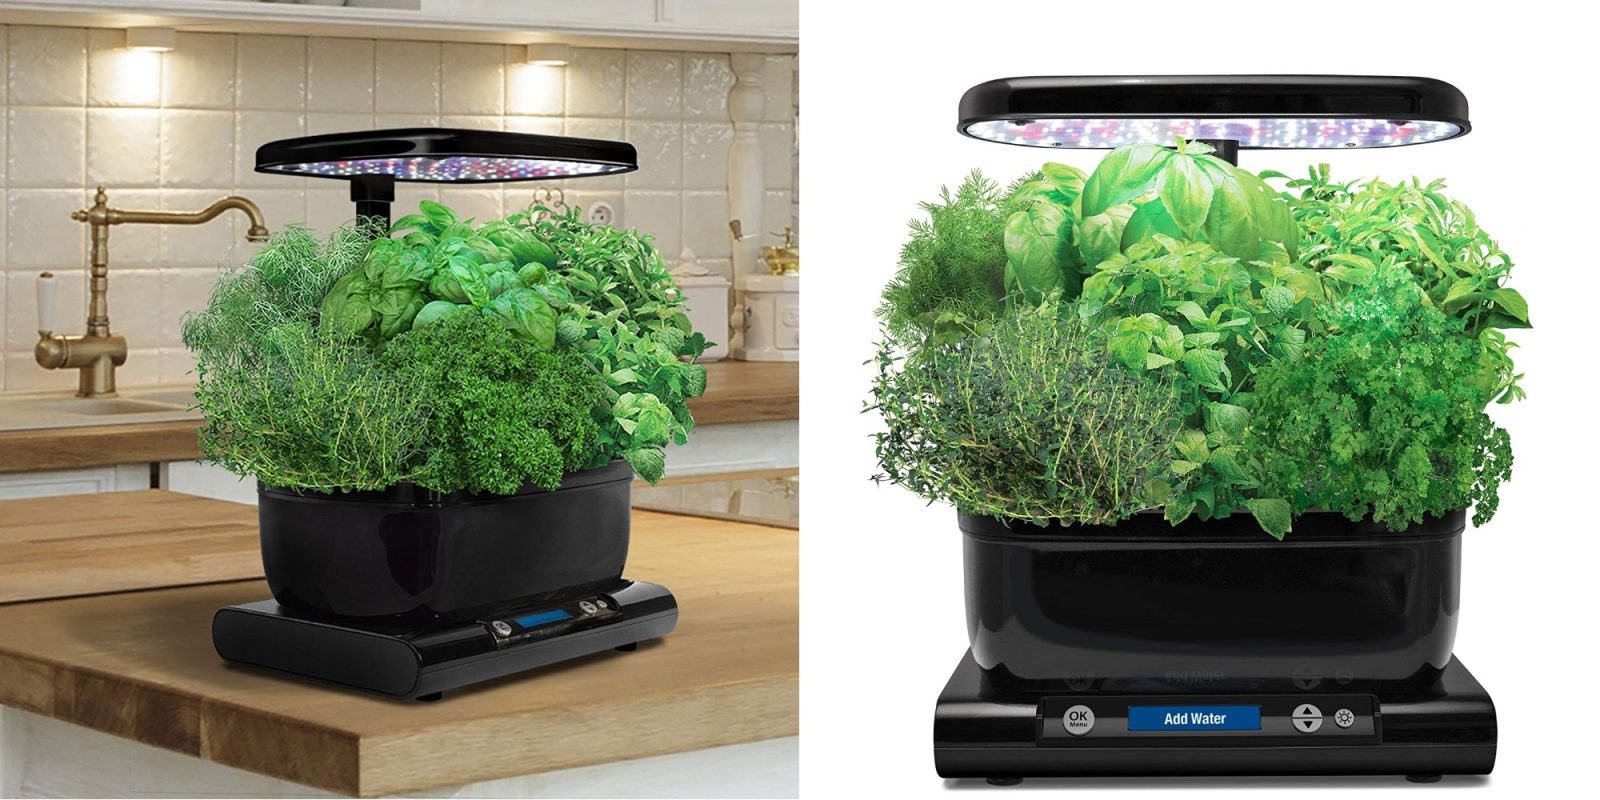 Prime Day sprouts a new low on AeroGarden Harvest Classic at $79 (40% off)